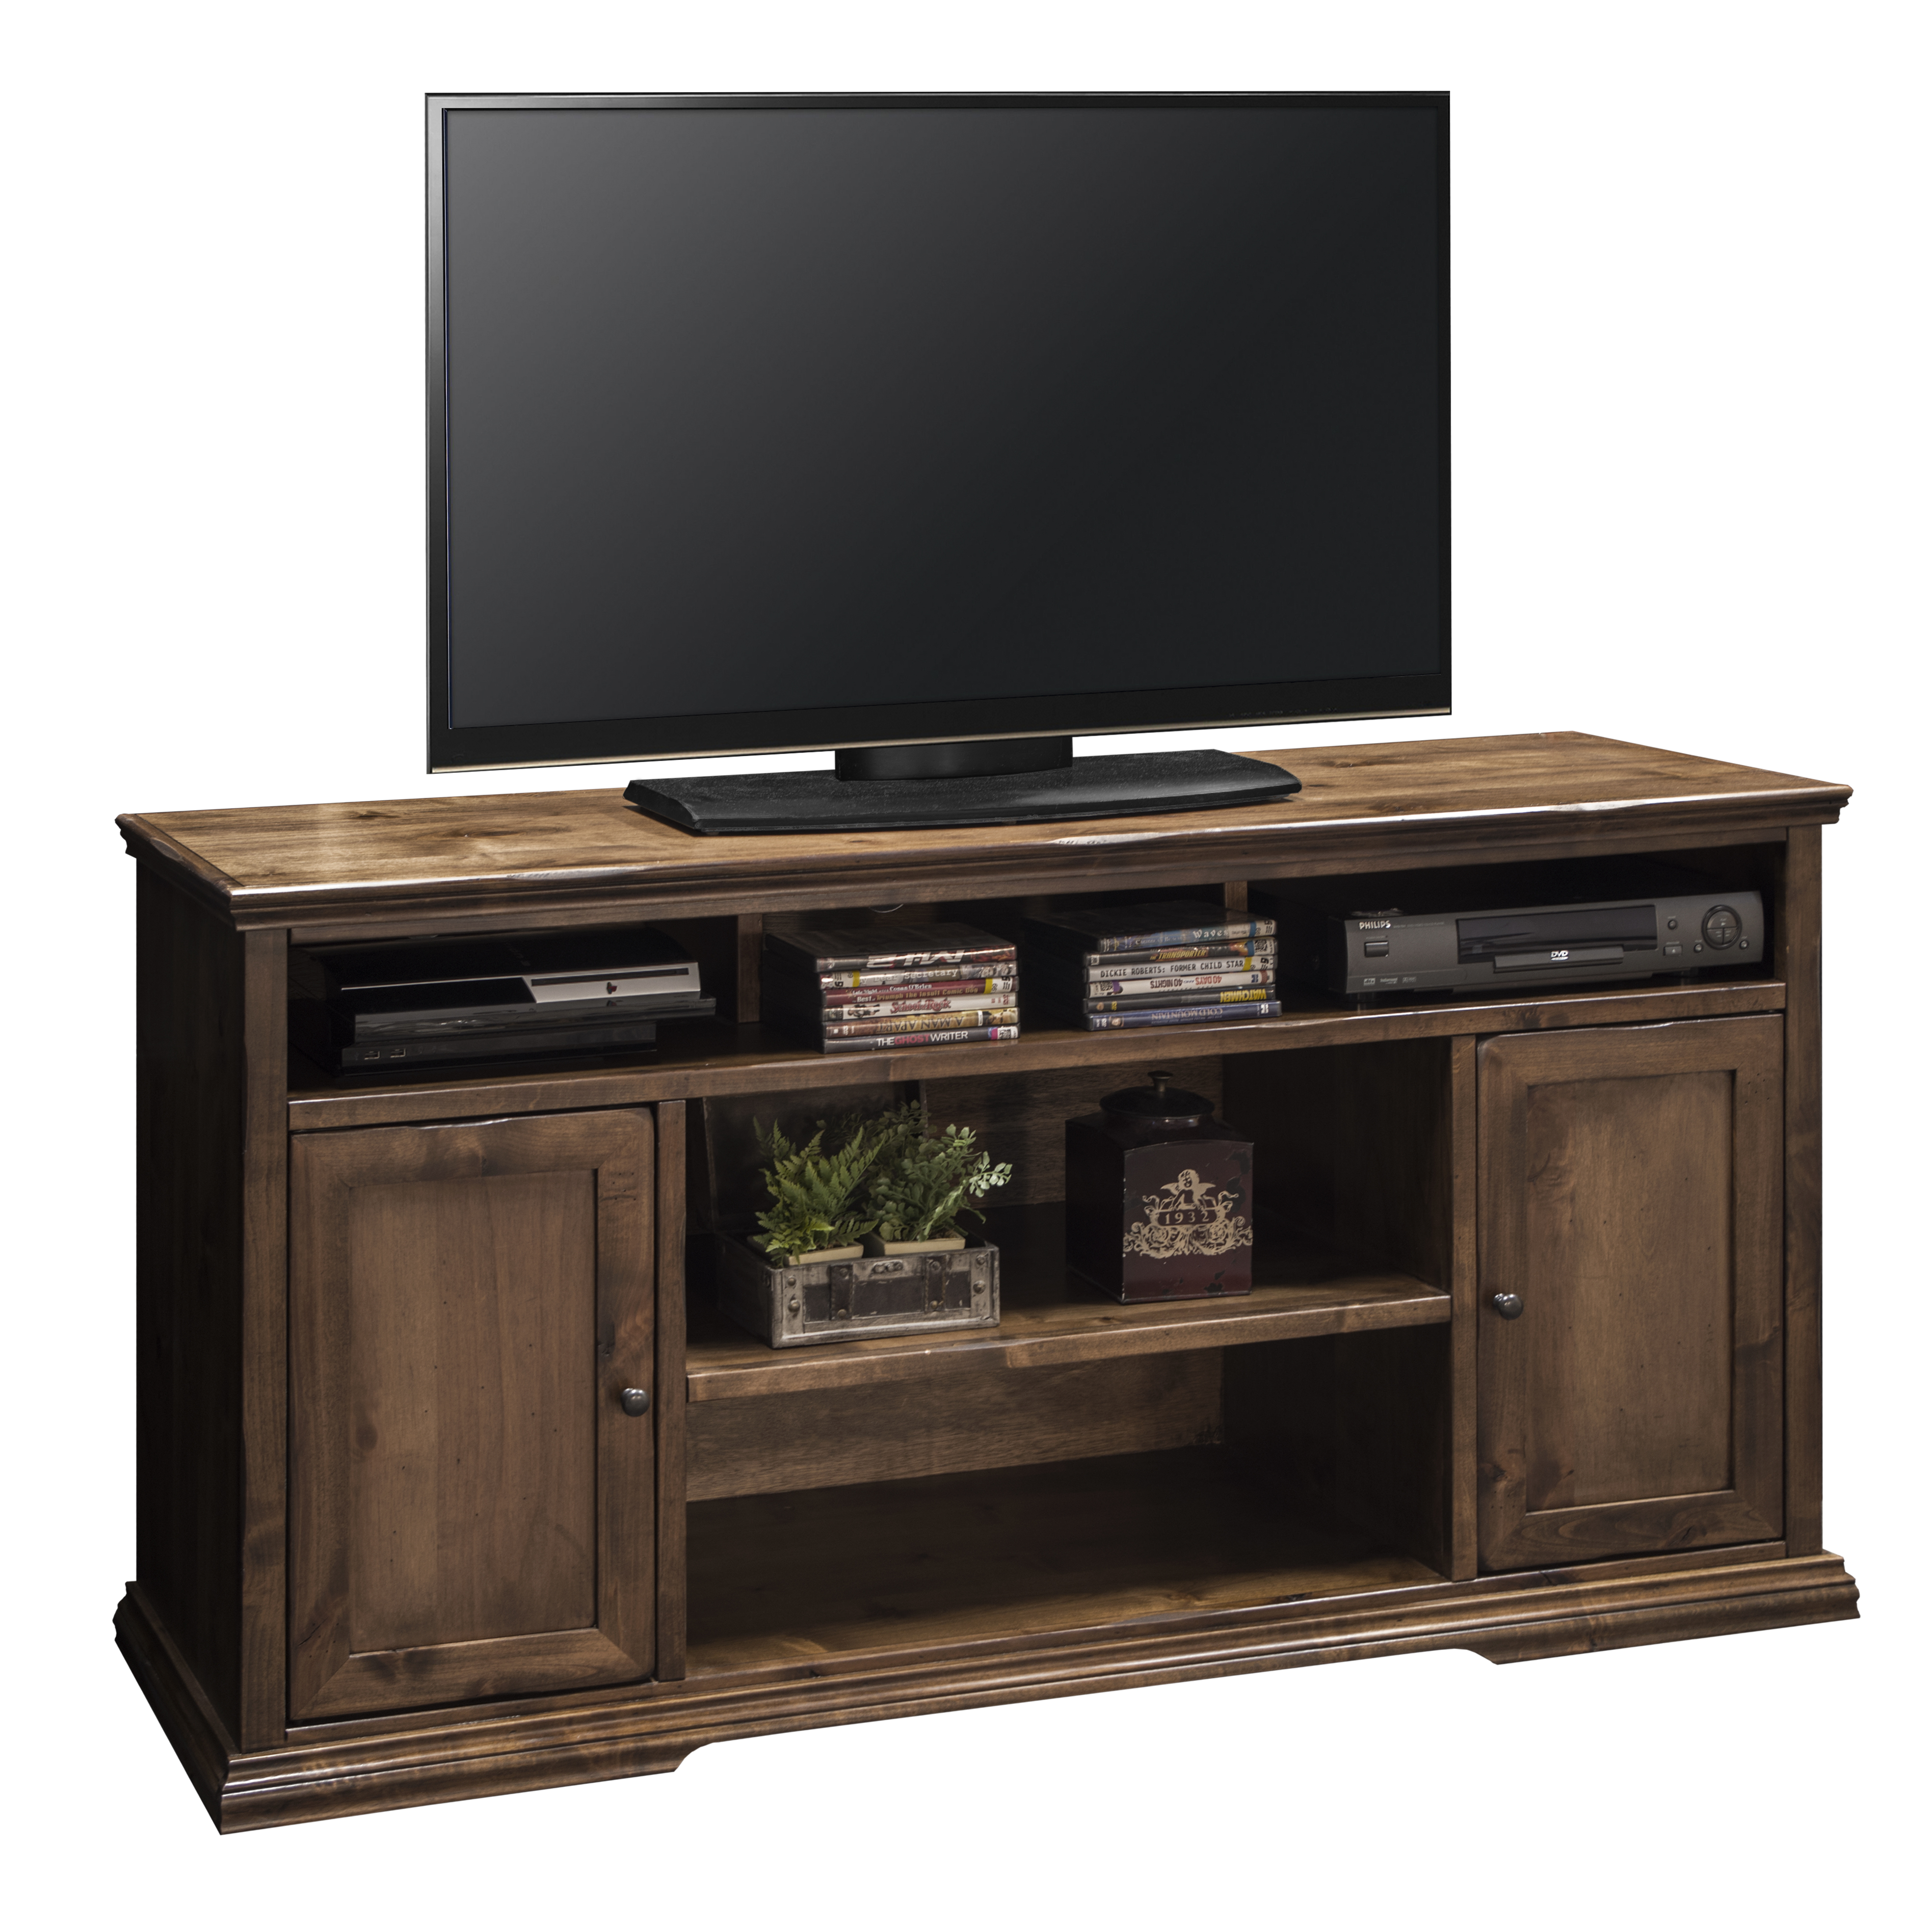 Legends furniture bozeman collection 60 tv console with rear cord management vandrie home Home furniture tv stands